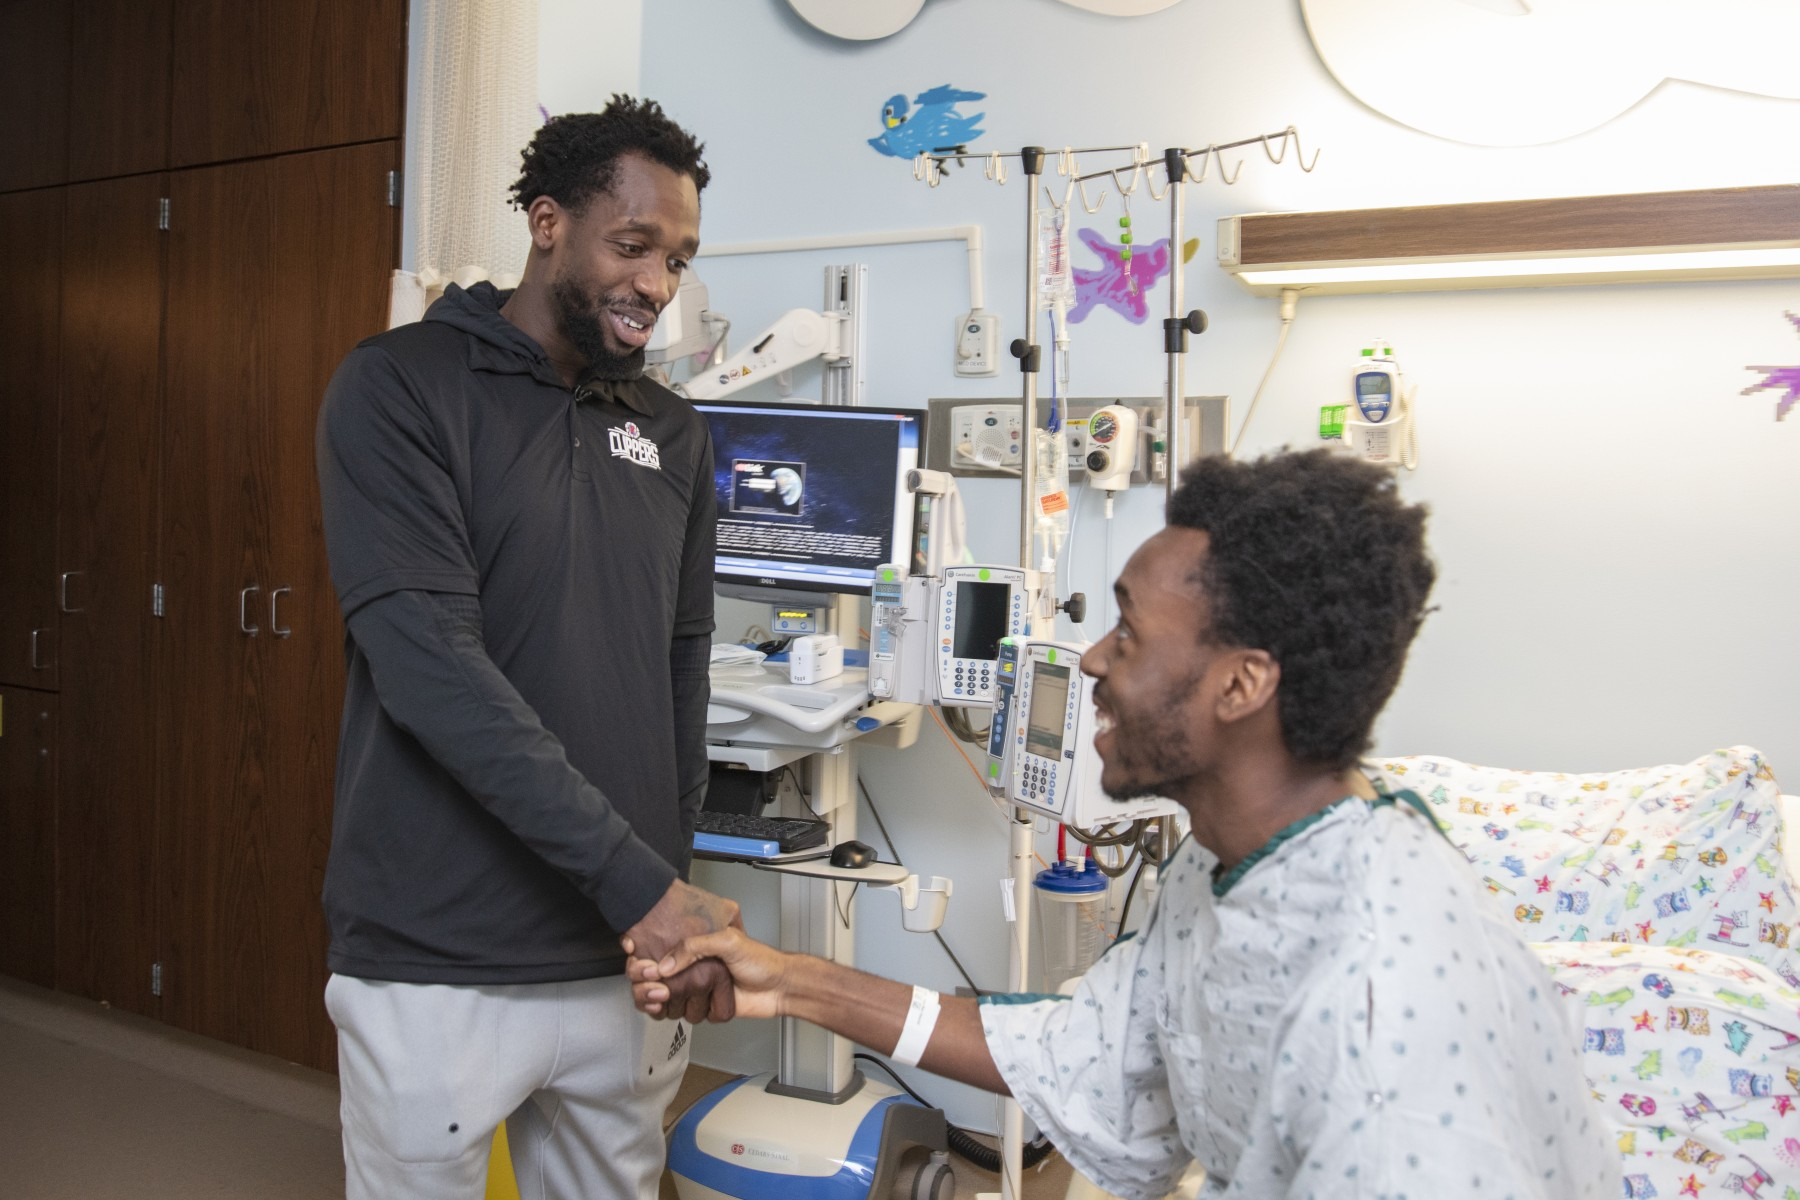 Clippers star Patrick Beverley brightens the day for cancer patient David Mpoupesingul. Photo by Cedars-Sinai.